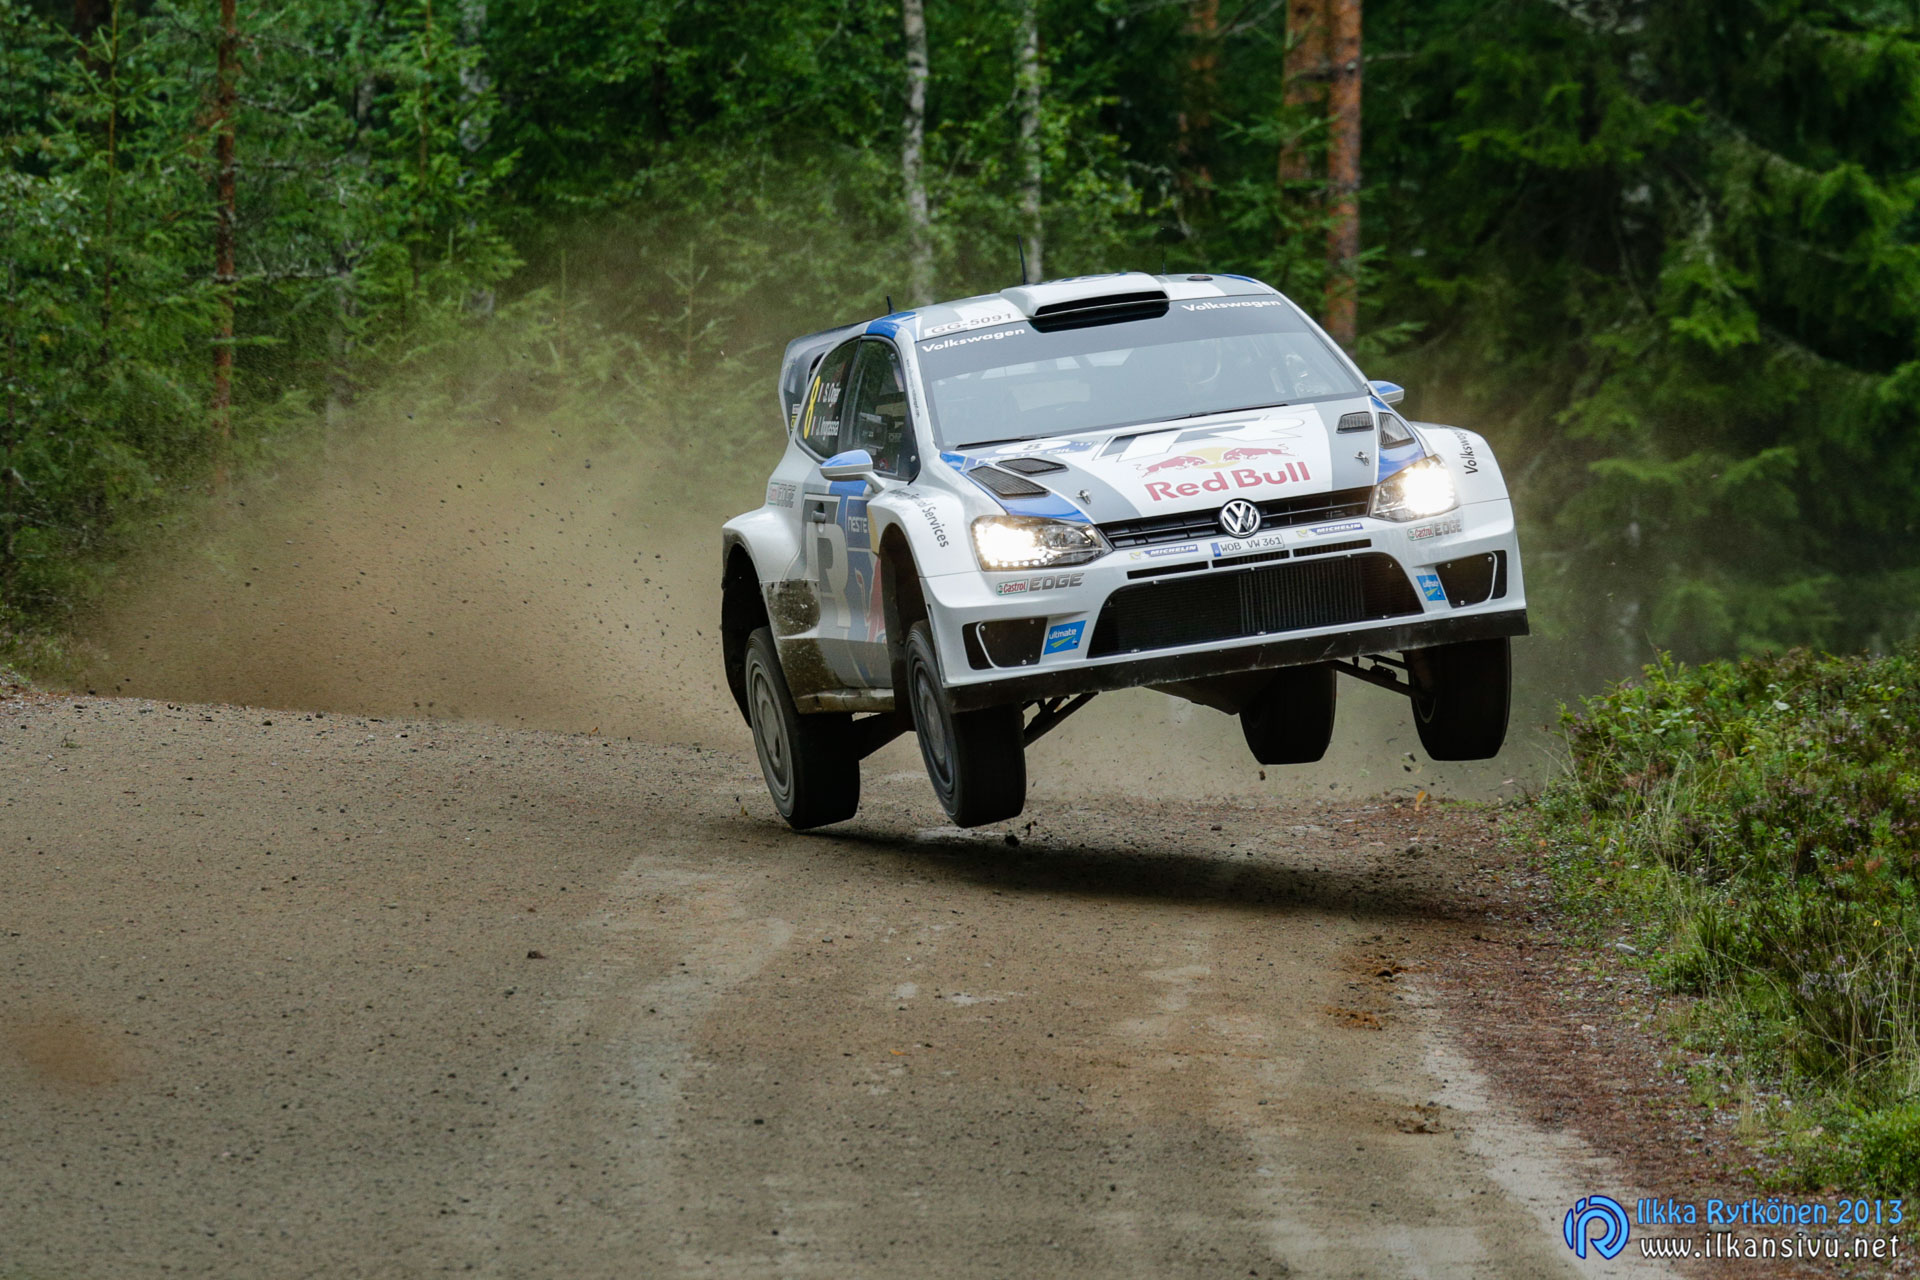 1/400 s, f/8, ISO 2000, 400 mm, EF100-400mm f/4.5-5.6L IS USM, Neste Oil Rally Finland 2013, Sebastien Ogier